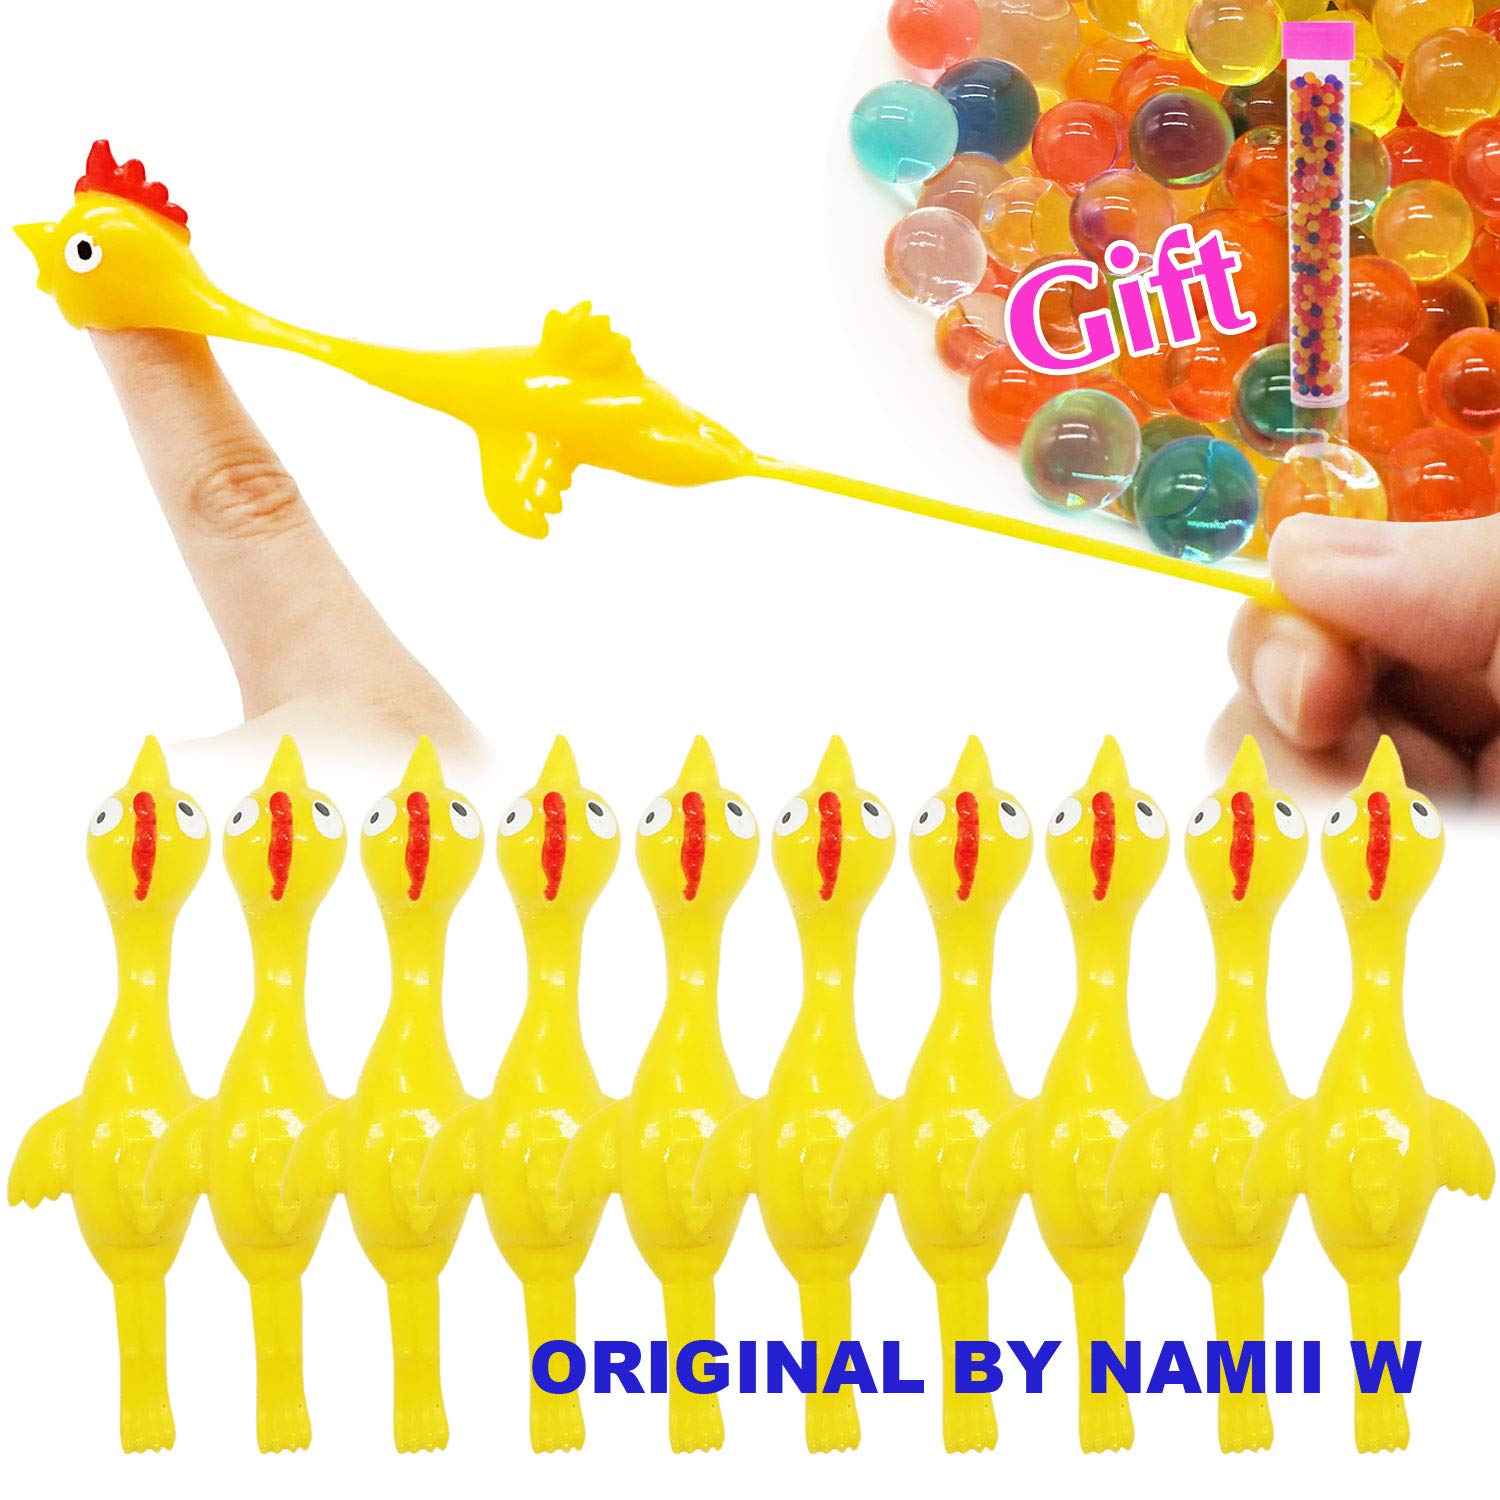 Namii W Slingshot Chicken Flick Chicken Fingers Stretchy Flying Chicken (10 Pack) Tricky Game Player's Favorite Scented Stress Relief Toy A Tube Water Beads (Yellow)